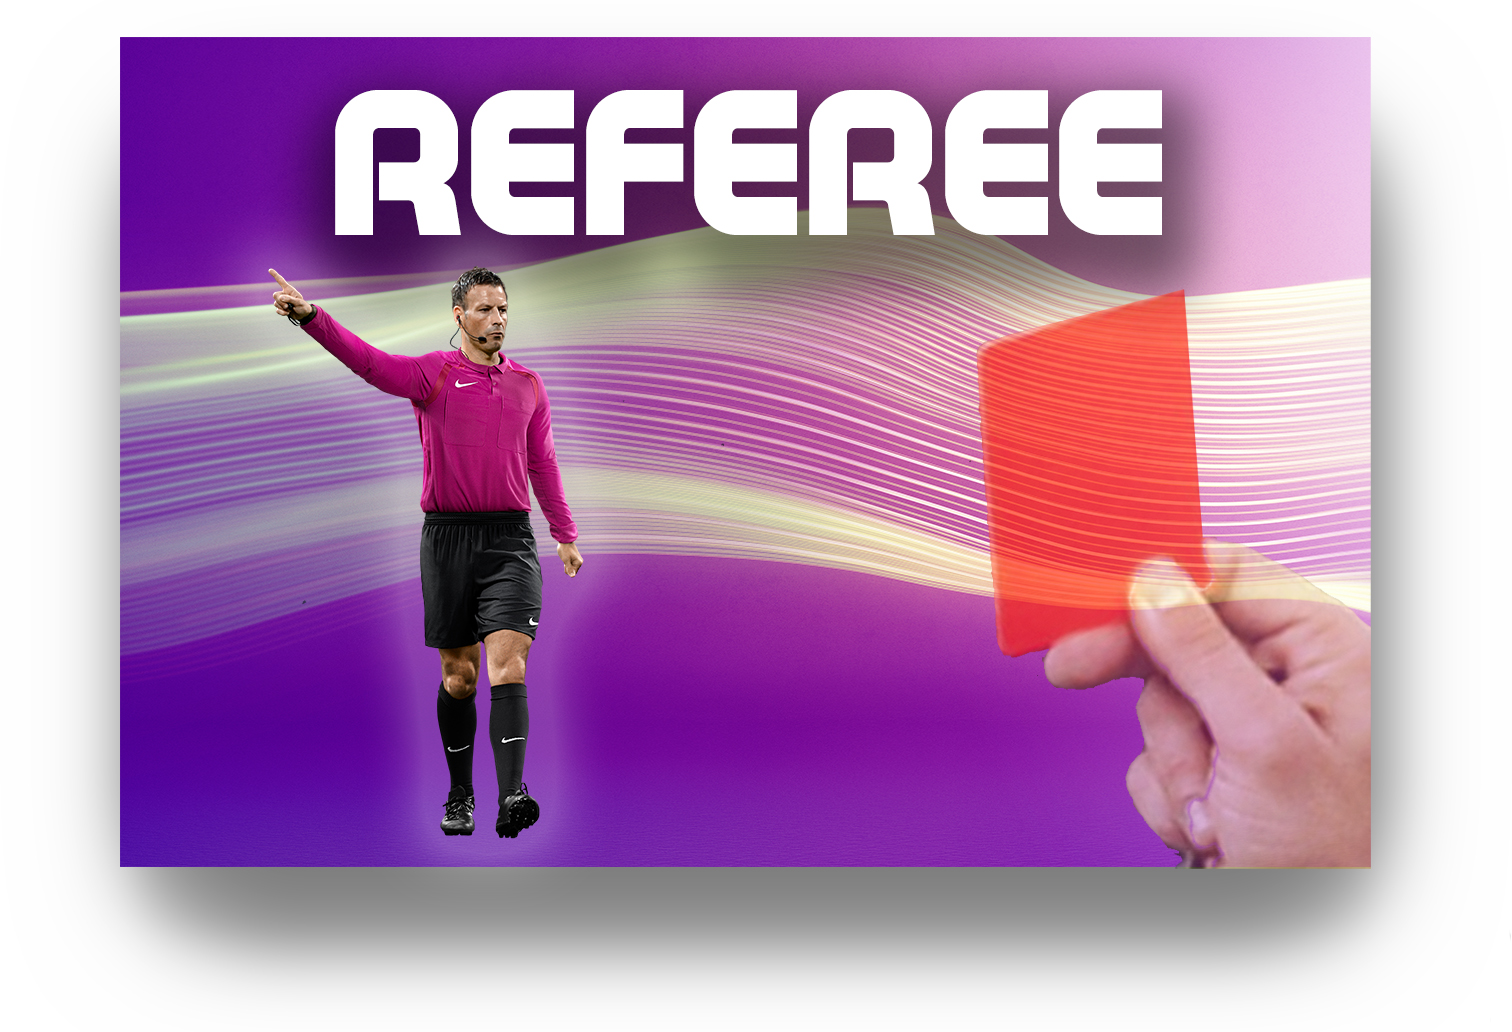 new-referee1.jpg